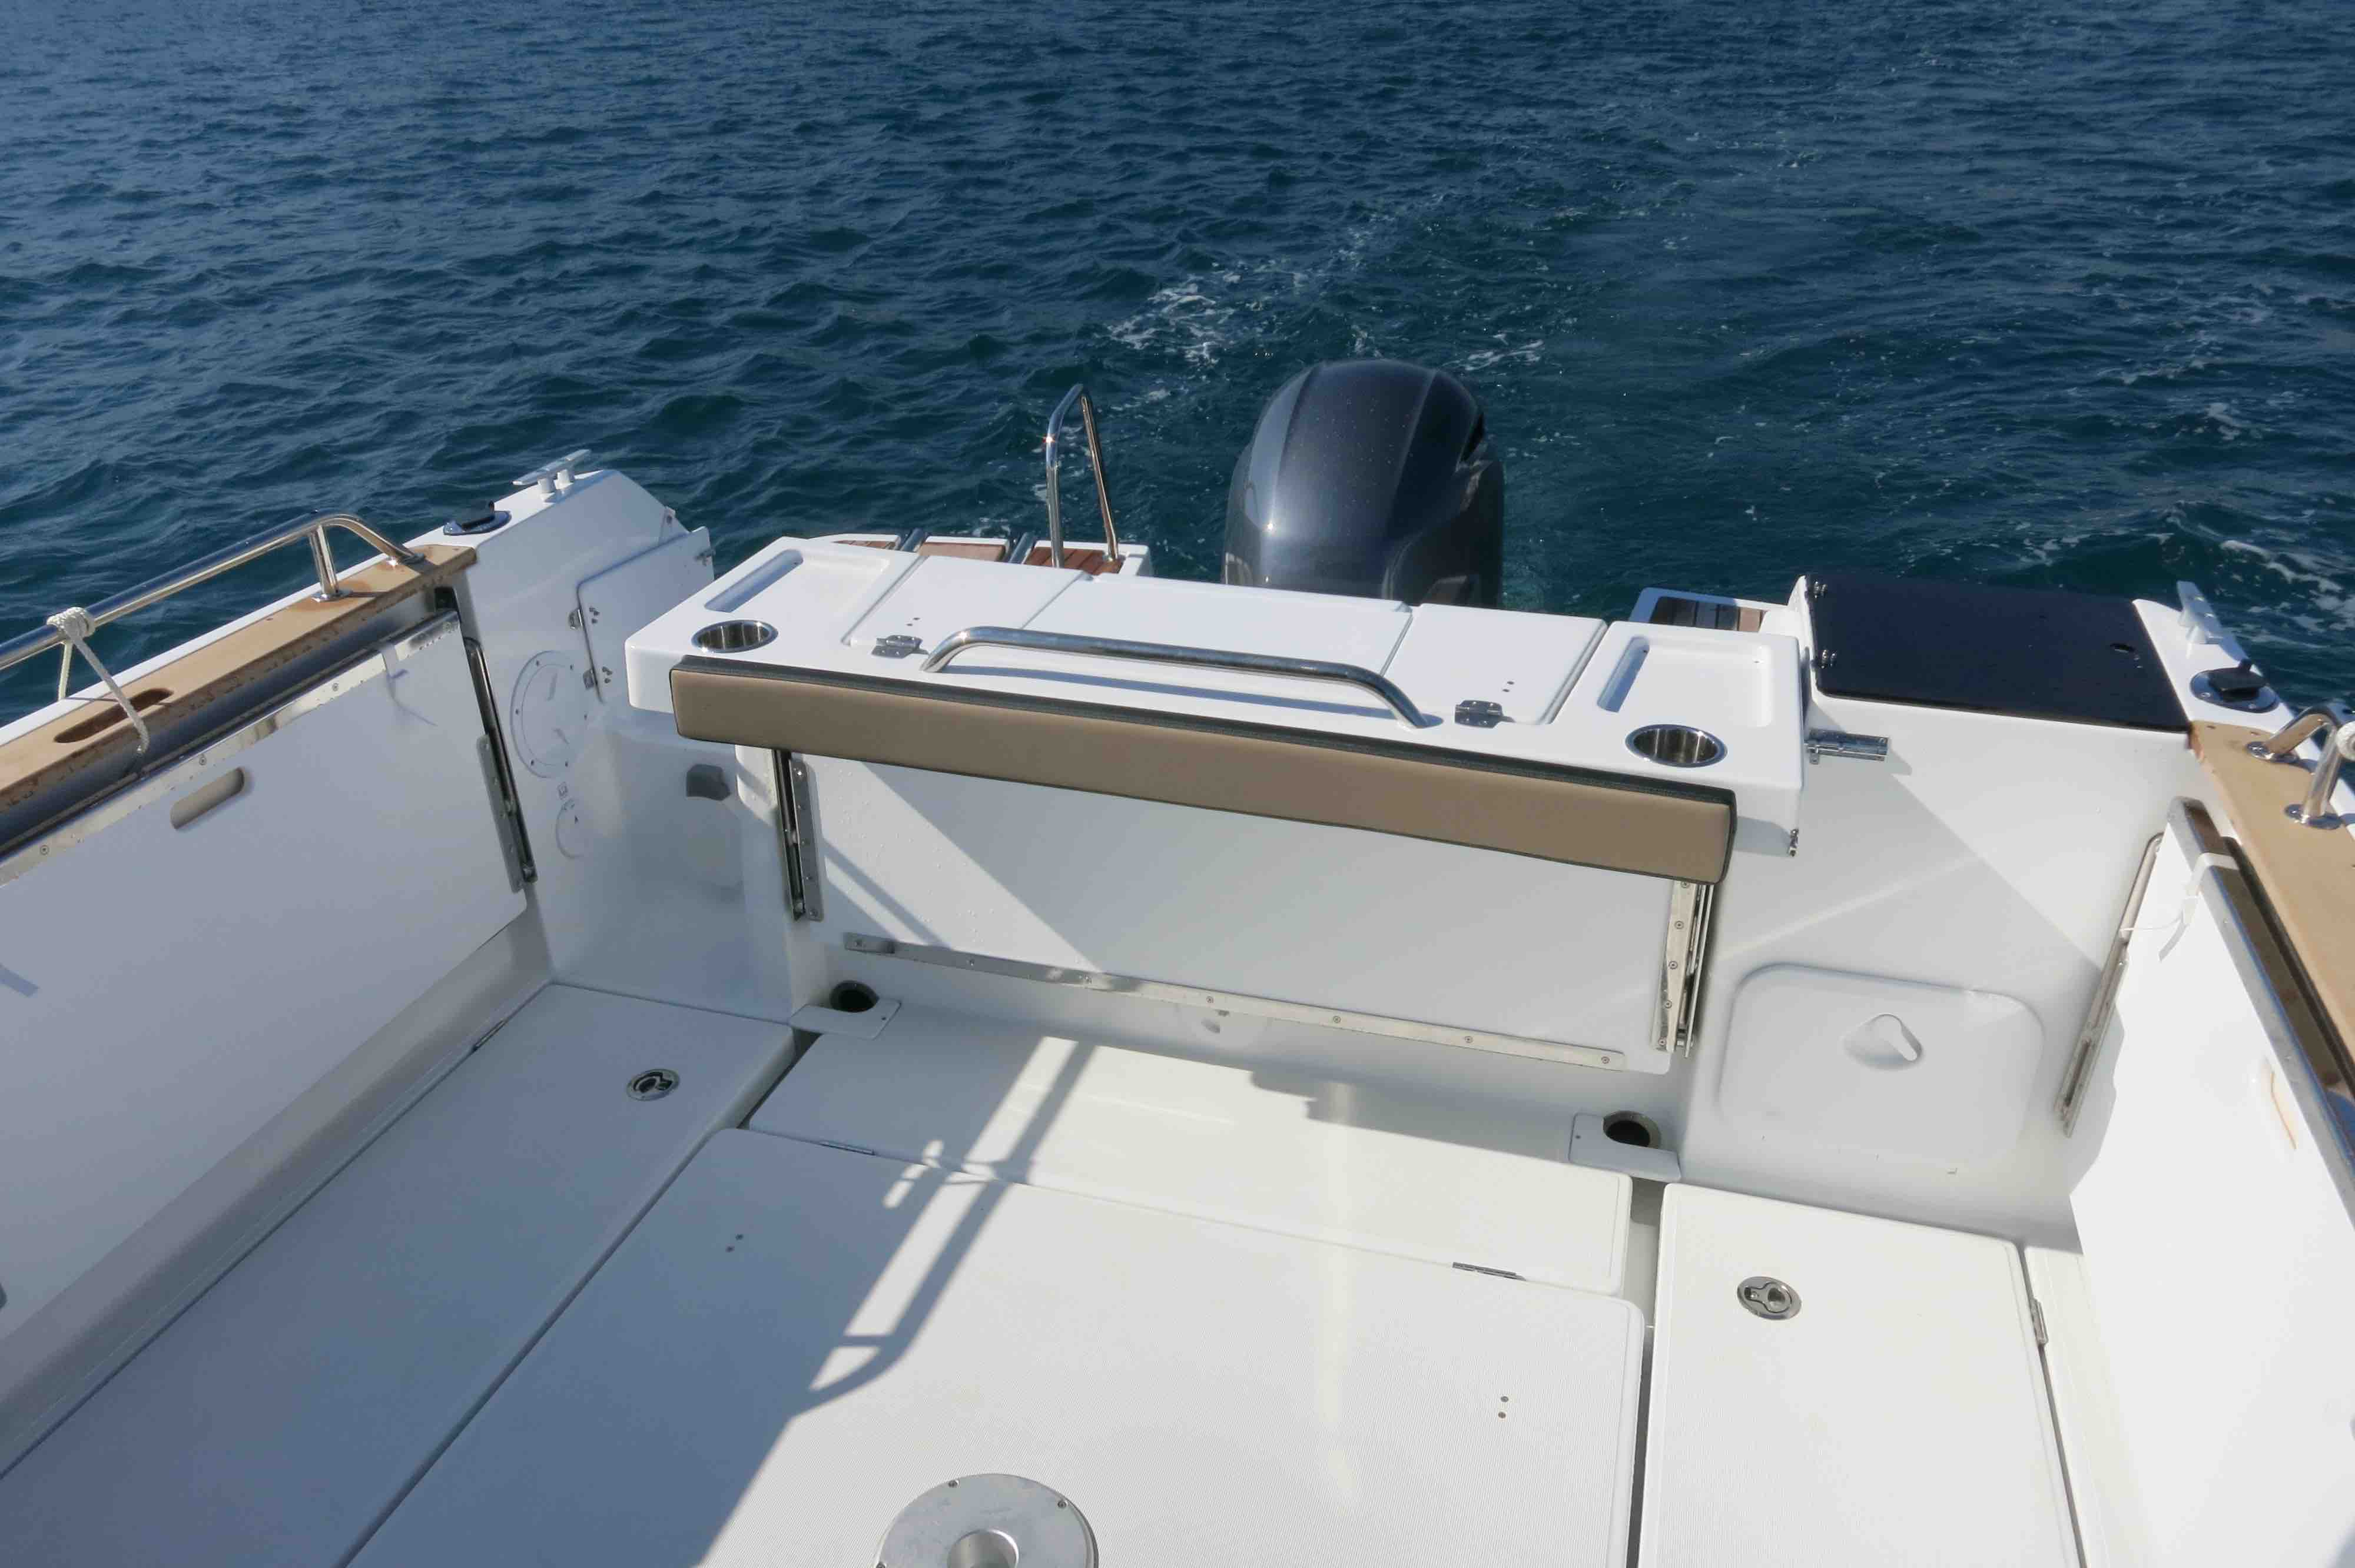 Jeanneau Merry Fisher 795 Marlin cockpit